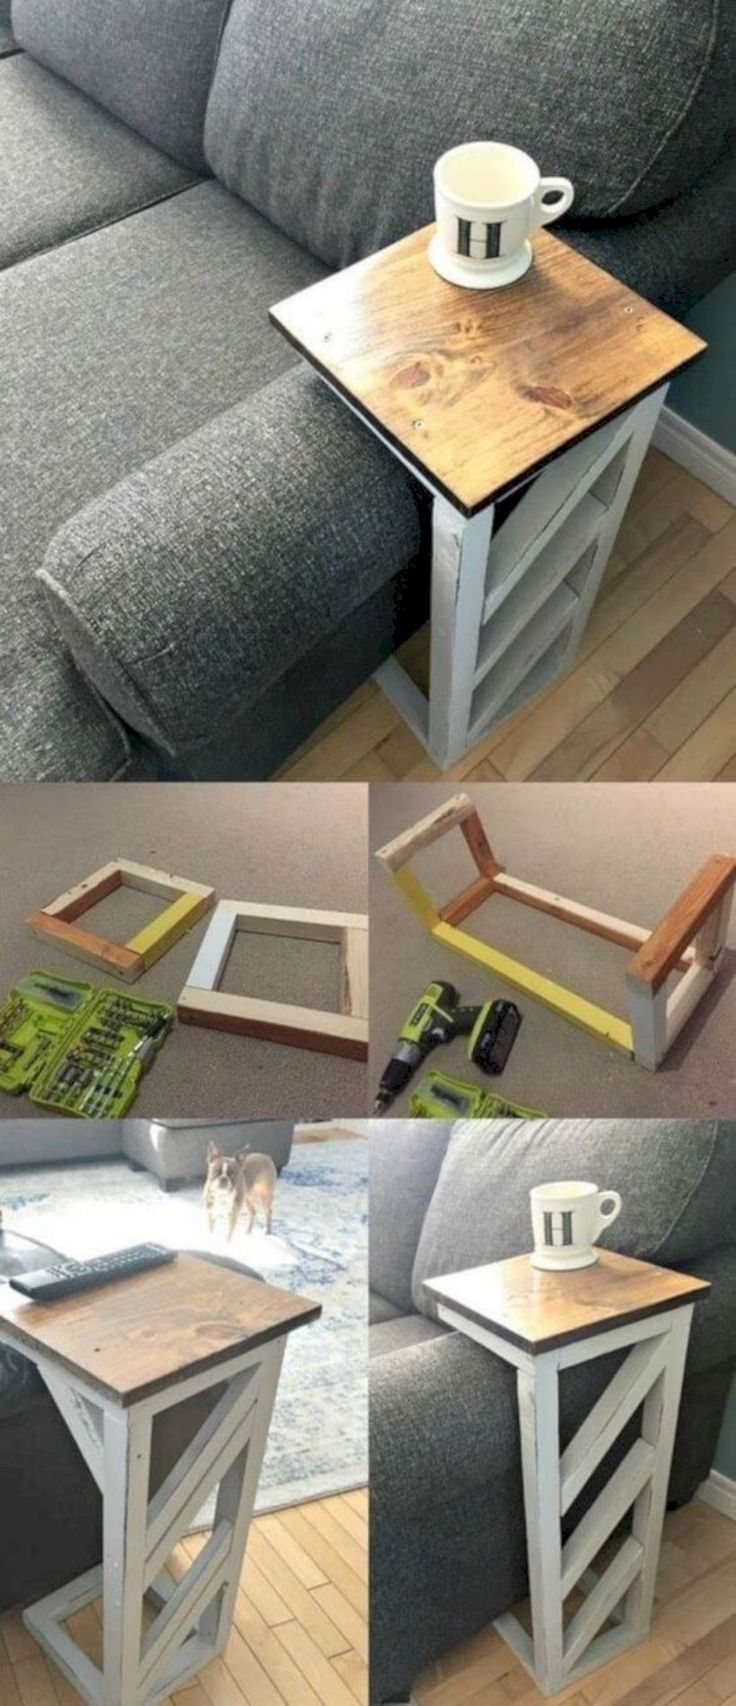 nice 44 Remarkable Projects and Ideas to Improve Your Home Decor https://matchness.com/2017/12/31/44-remarkable-projects-ideas-improve-home-decor/